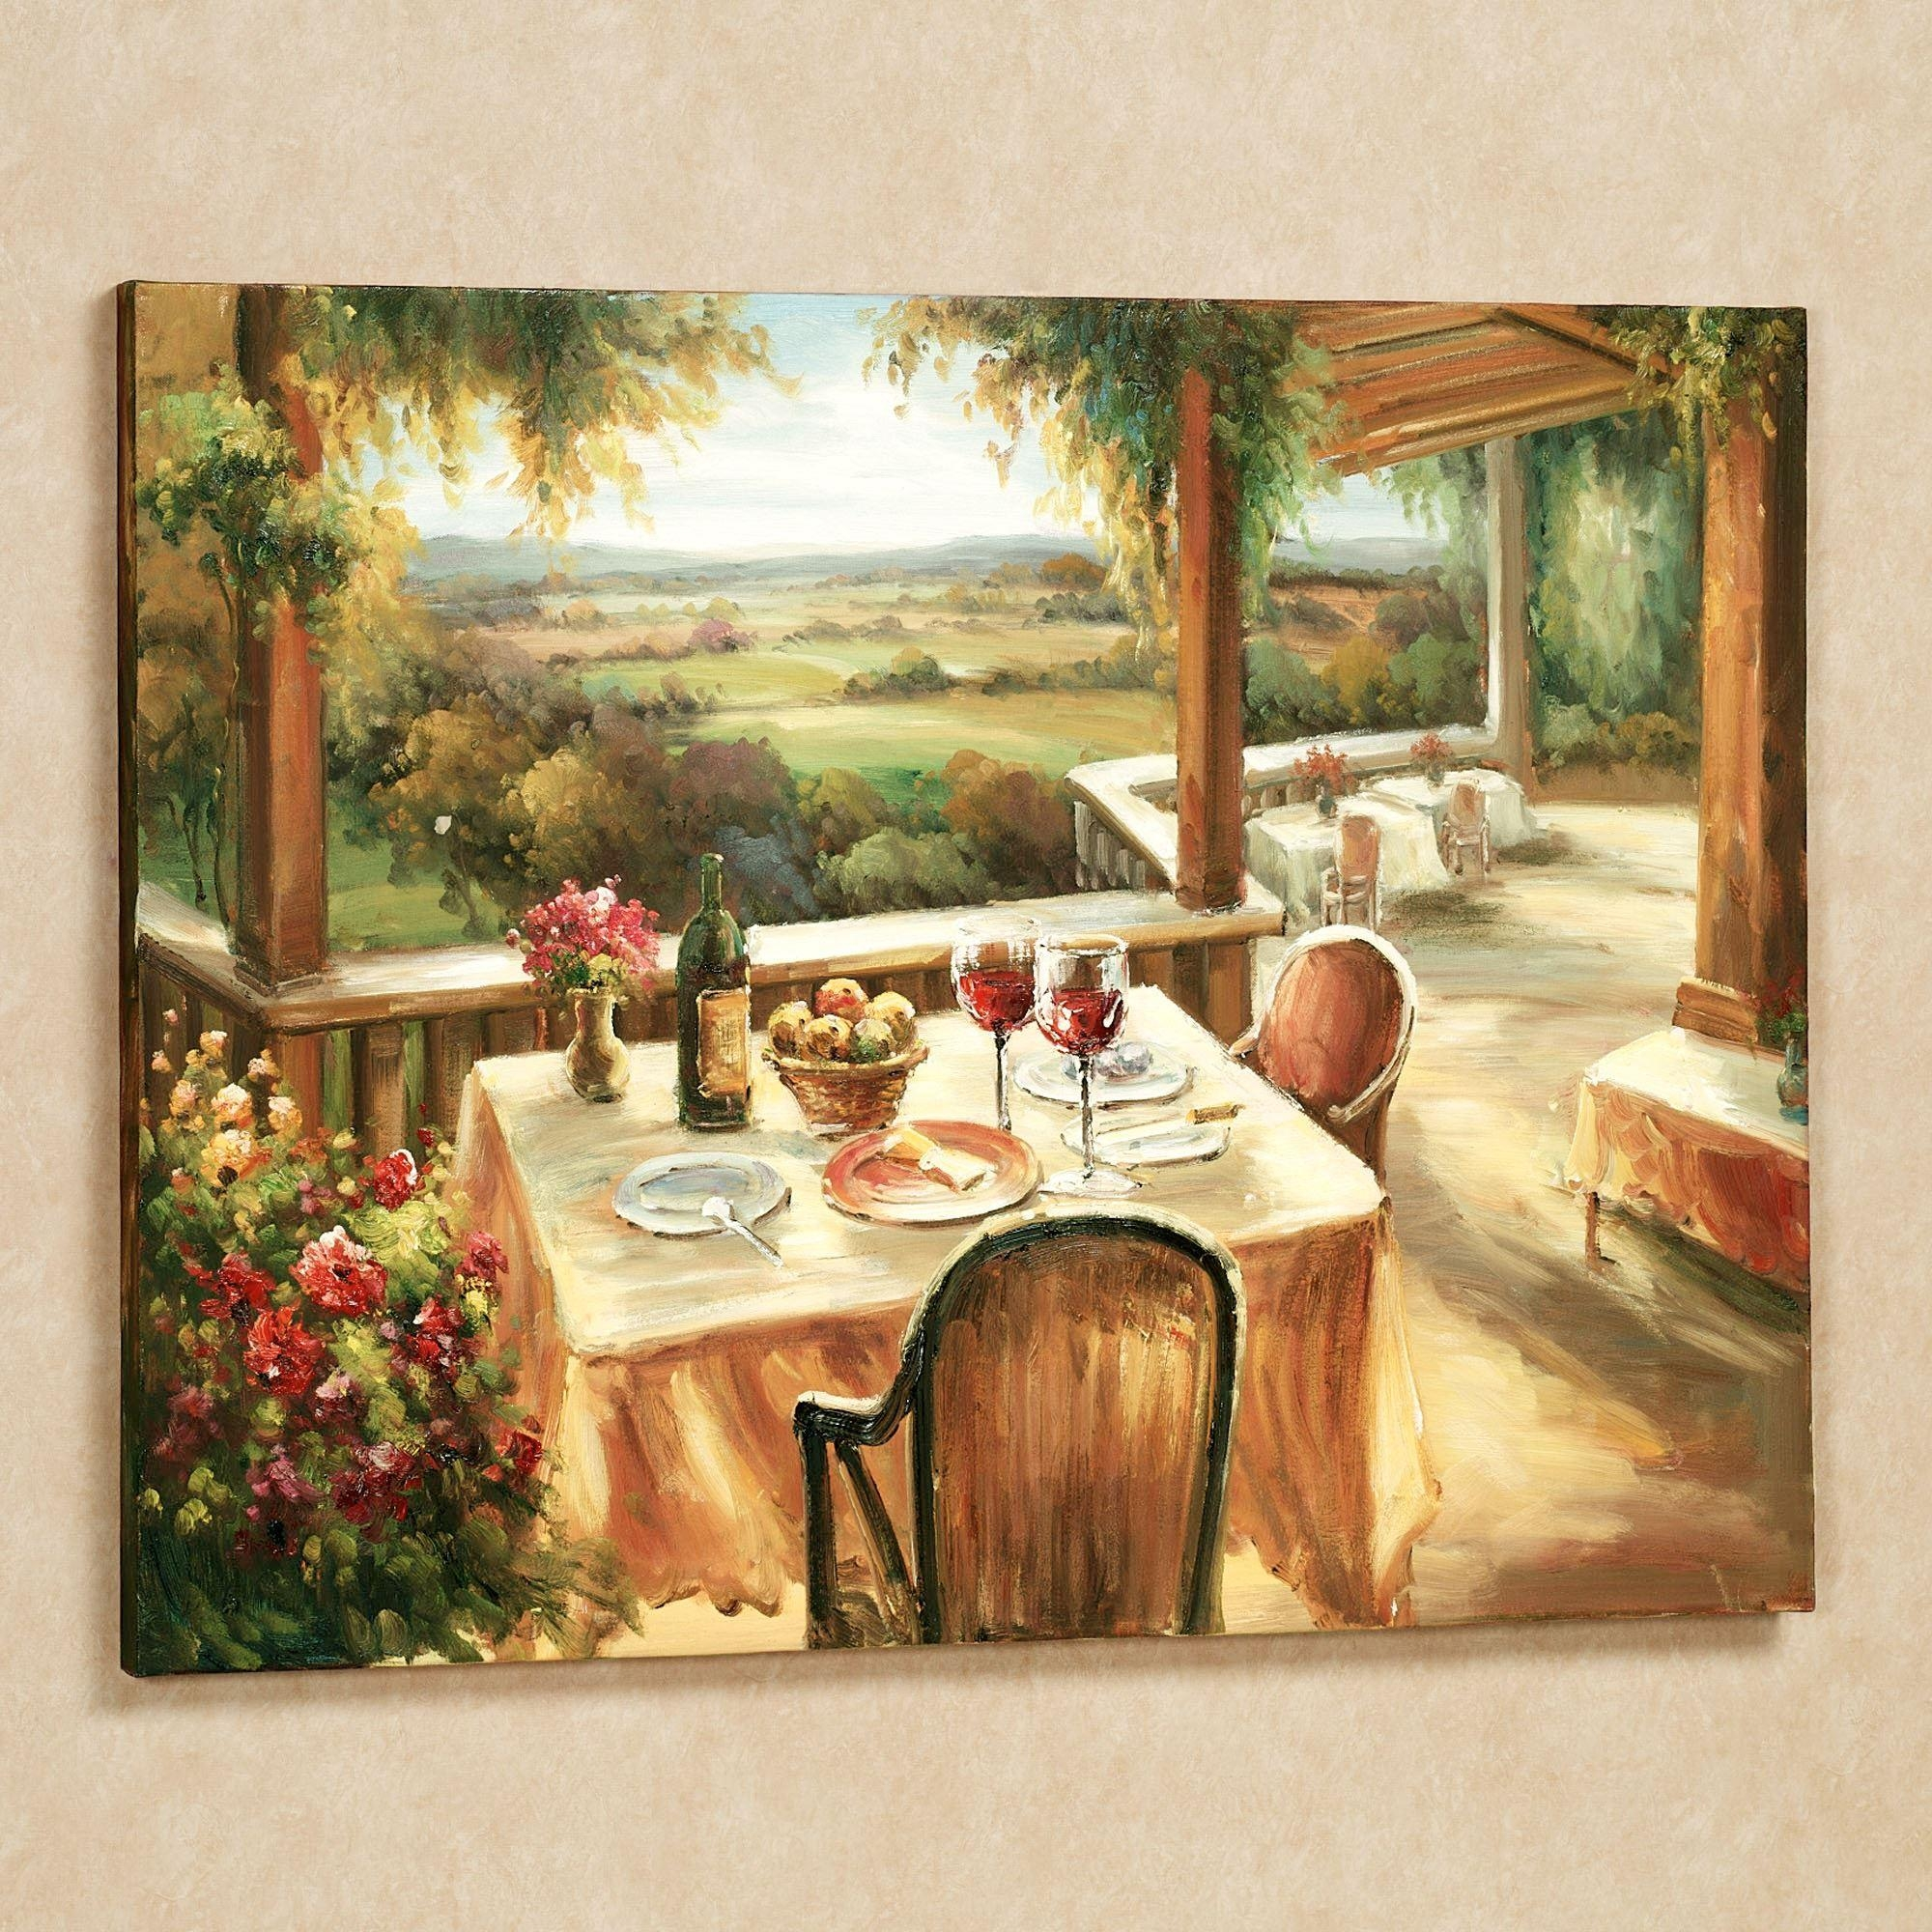 Wall Art Ideas: Italian Villa Wall Art (Explore #14 of 20 Photos)